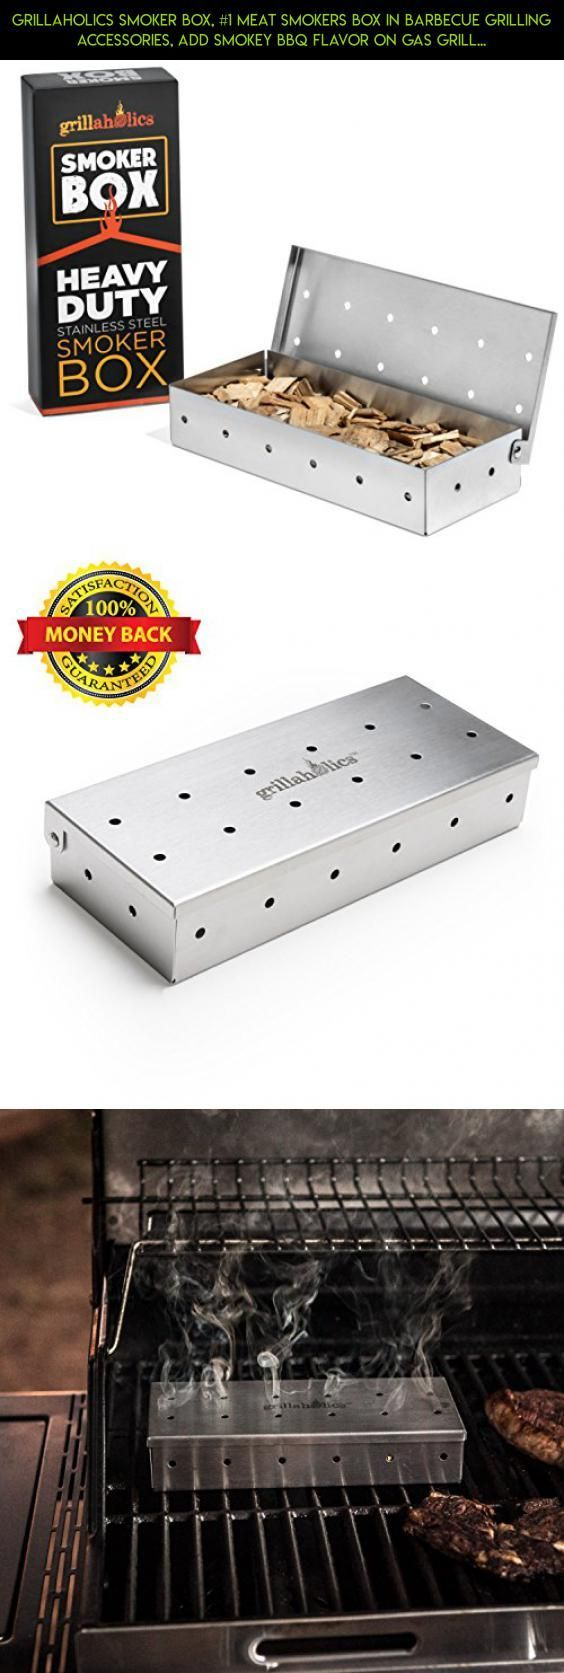 Grillaholics Smoker Box, #1 Meat Smokers Box in Barbecue Grilling Accessories, Add Smokey BBQ Flavor on Gas Grill or Charcoal Grills with This Stainless Steel Wood Chip Smoker Box #drone #bbq #technology #camera #kit #fpv #parts #shopping #tech #products